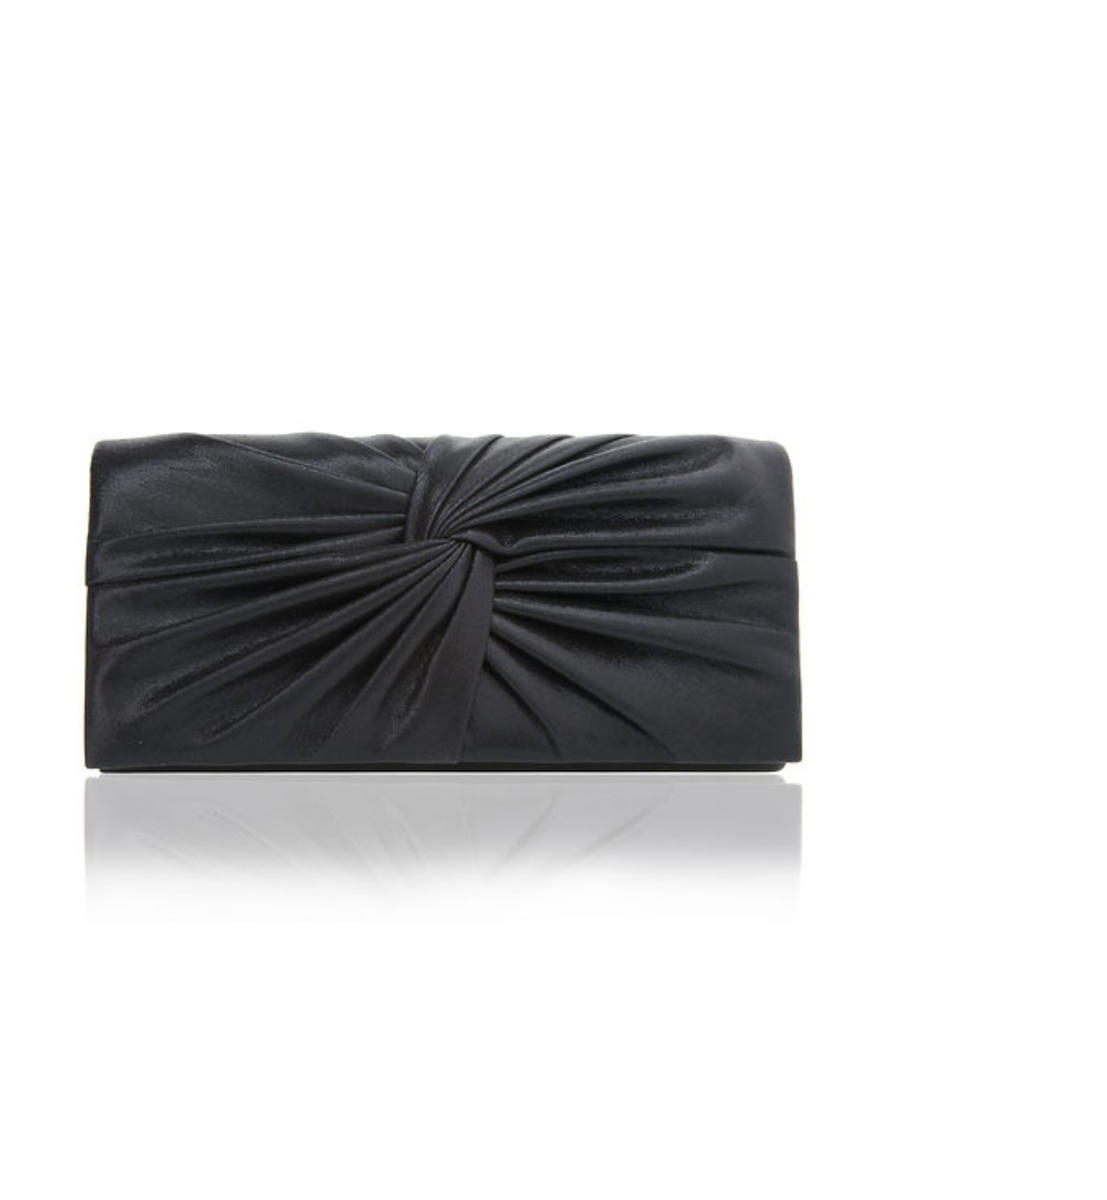 Reflective Suedette Knot Clutch